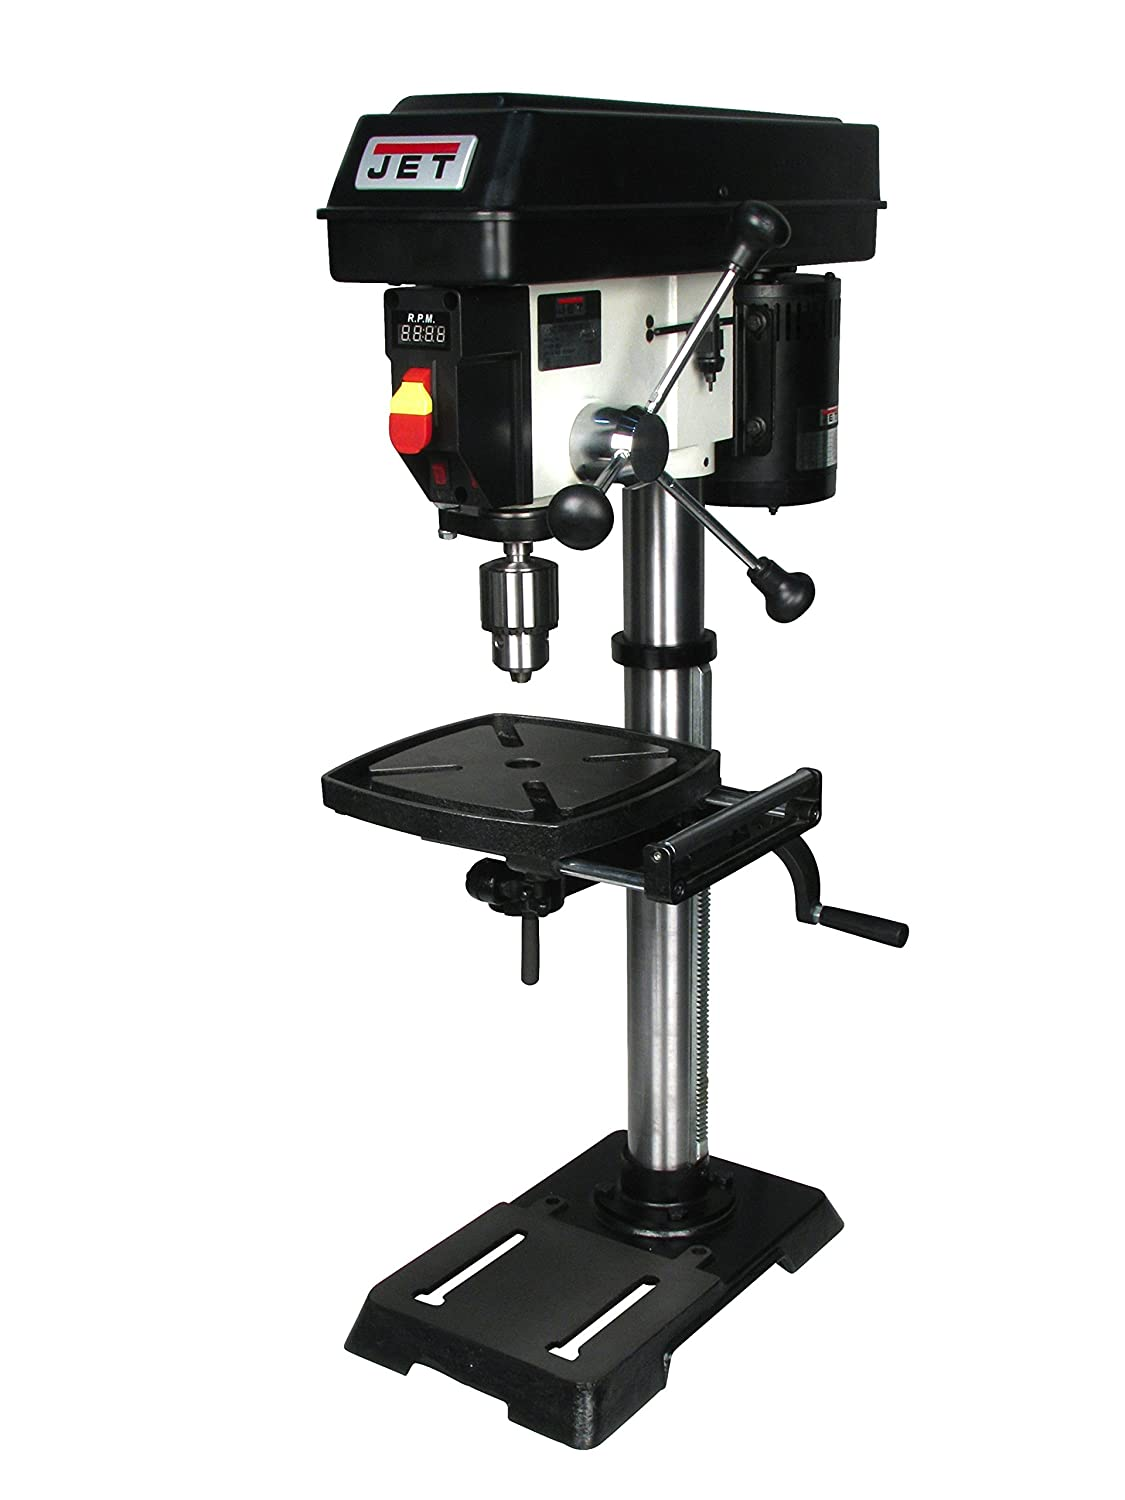 Jet 716000 JWDP-12 Drill Press Black Friday Deals 2020